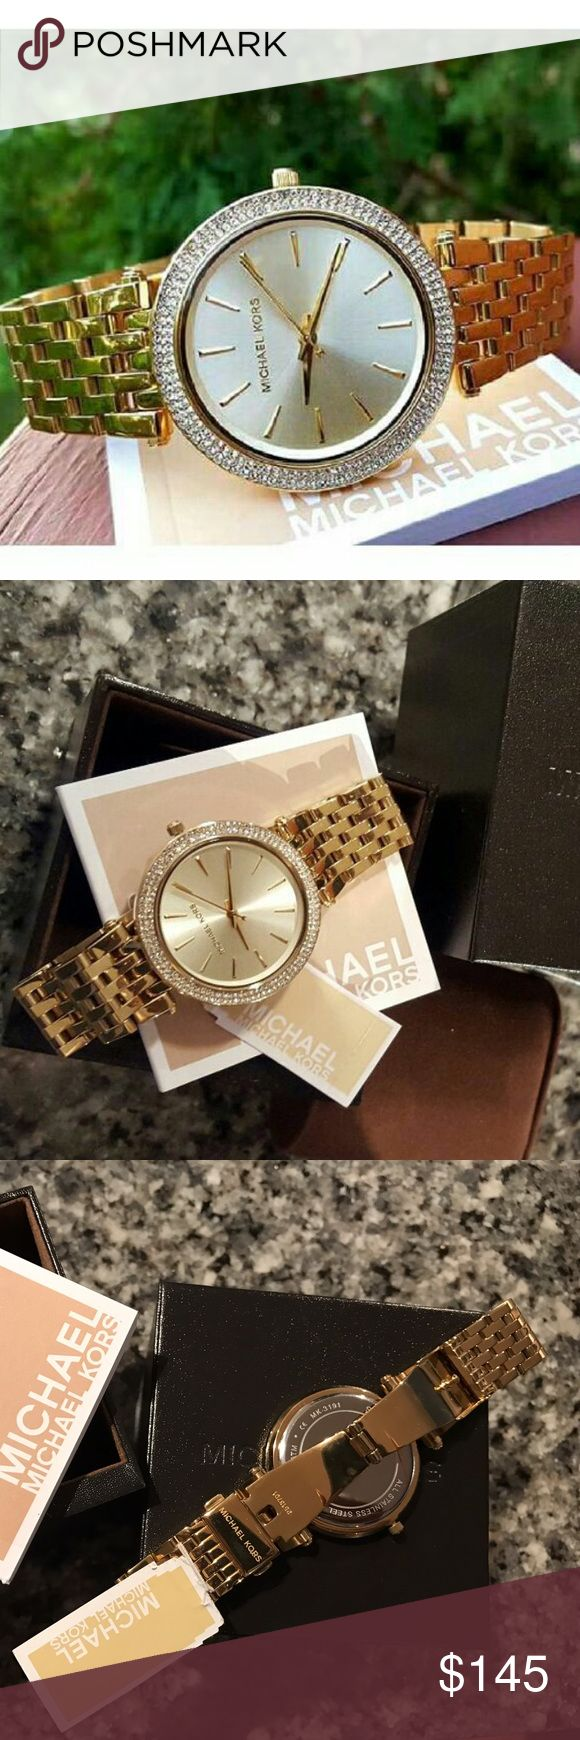 New Michael Kors Darci gold bracelet watch MK3191 LAST 1! Guaranteed authentic MK3191  Retail: $250  Model: Darci  Destination Glam Gold stainless steel  New with Michael kors watch box and owners booklet included  39mm case  5 ATM  UPC: 691464950248  No trades. Buy now or offer only.                               Same business day shipping Michael Kors Accessories Watches